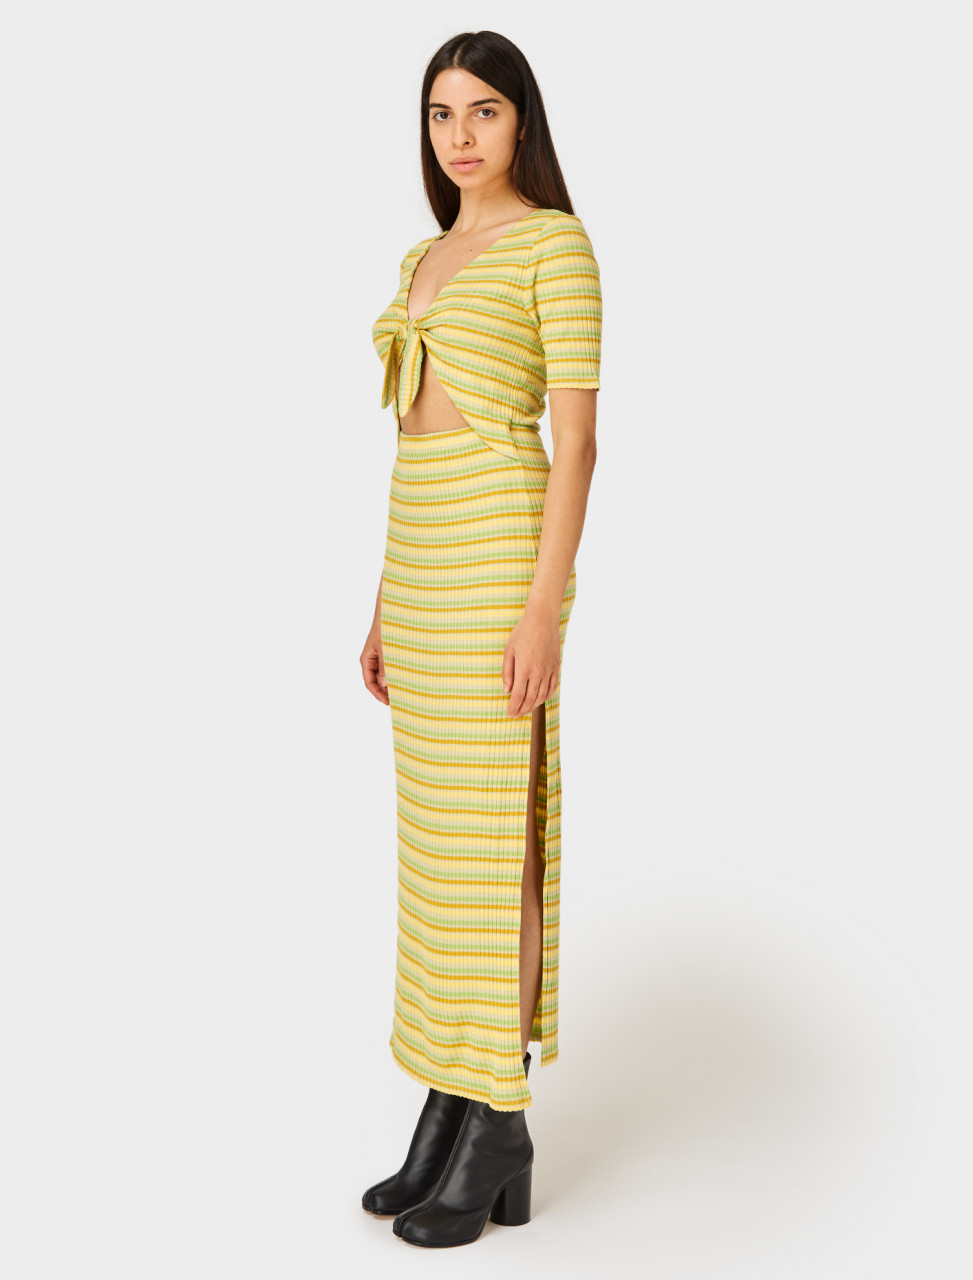 Side view of Paloma Wool Vermont Dress in Pastel Yellow Stripe